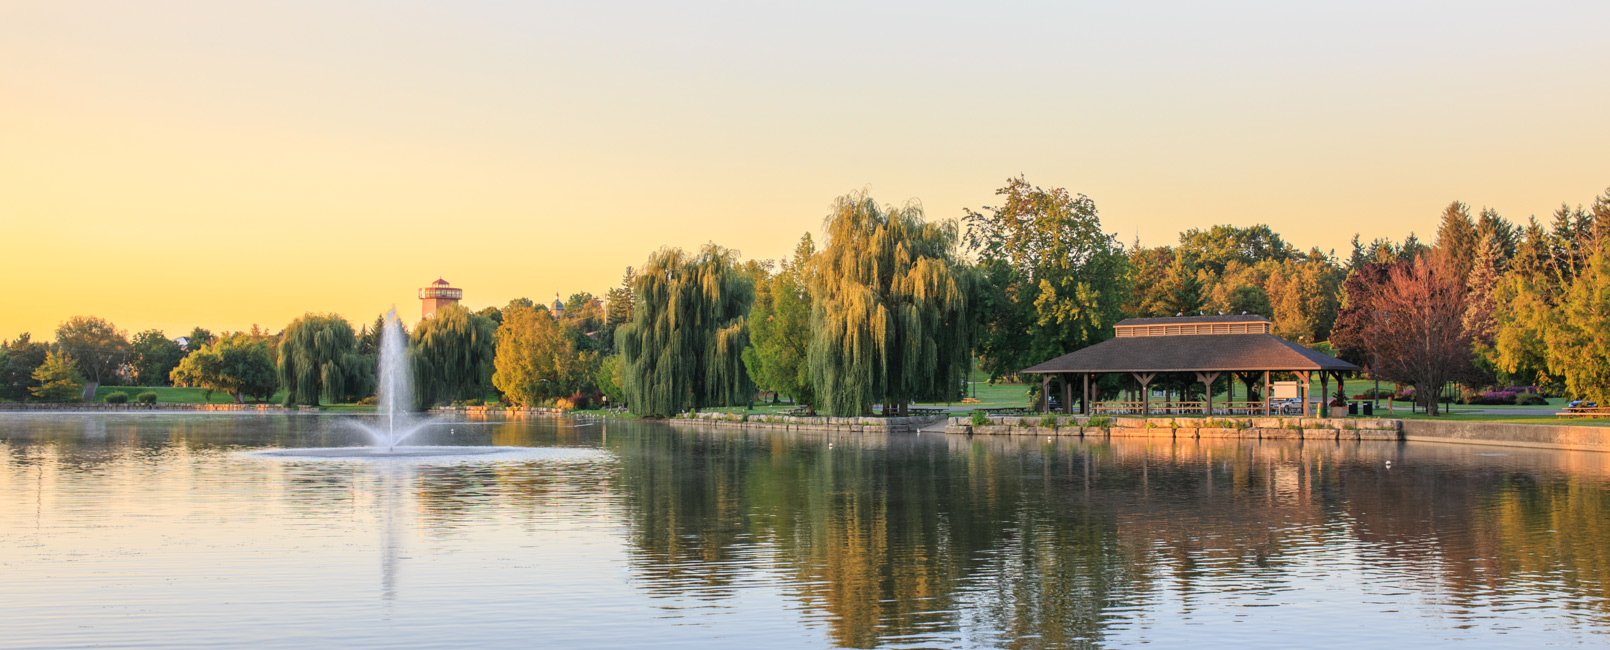 River bank with willow trees